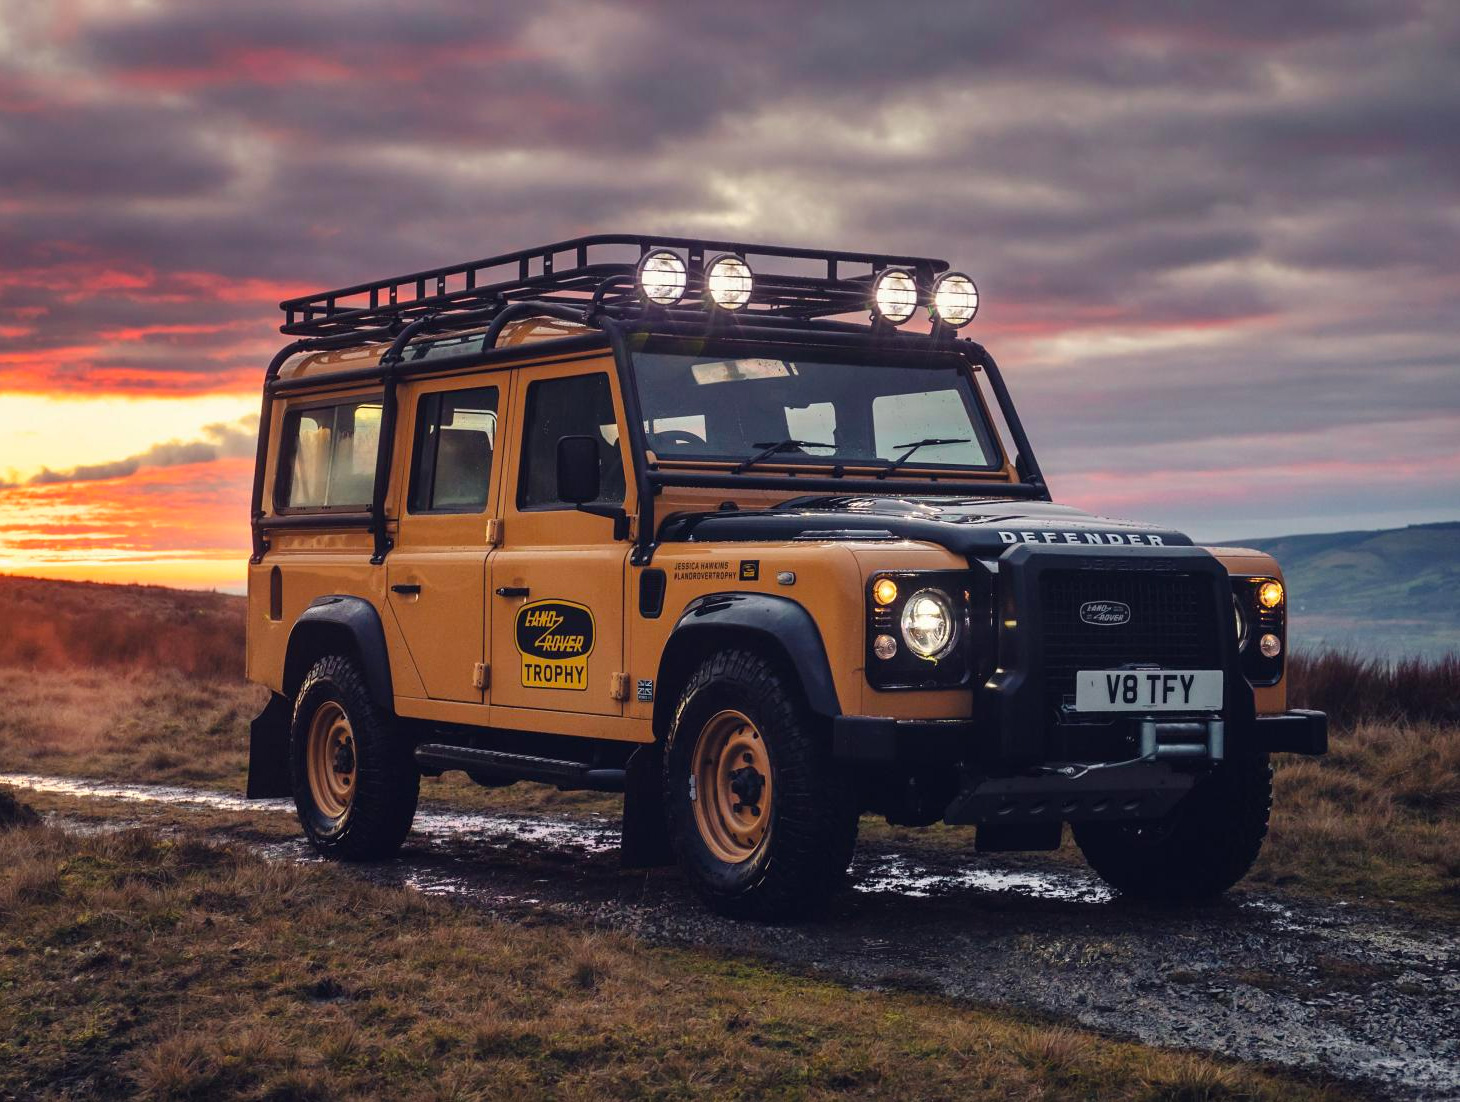 Land Rover Unveils Limited Defender Works V8 Trophy at werd.com